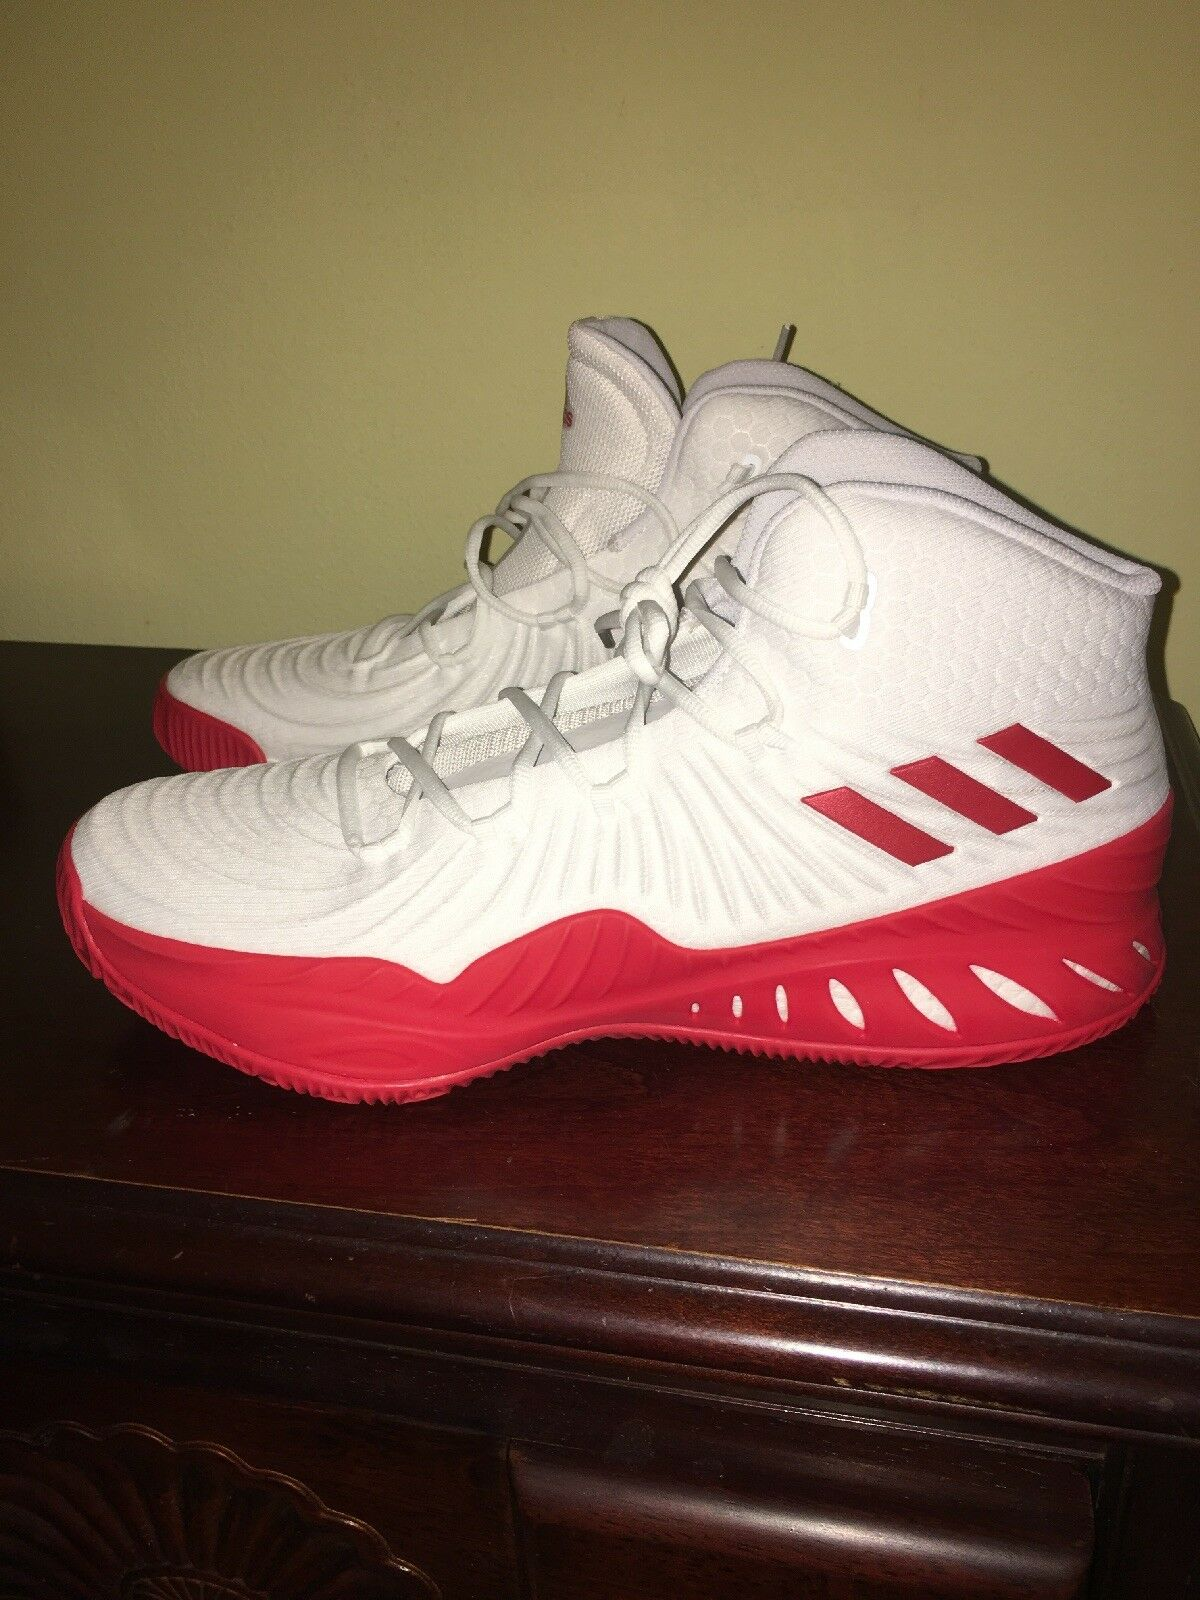 New Adidas Crazy Explosive 2017 Boost Size 13.5 Basketball Red White CQ1527